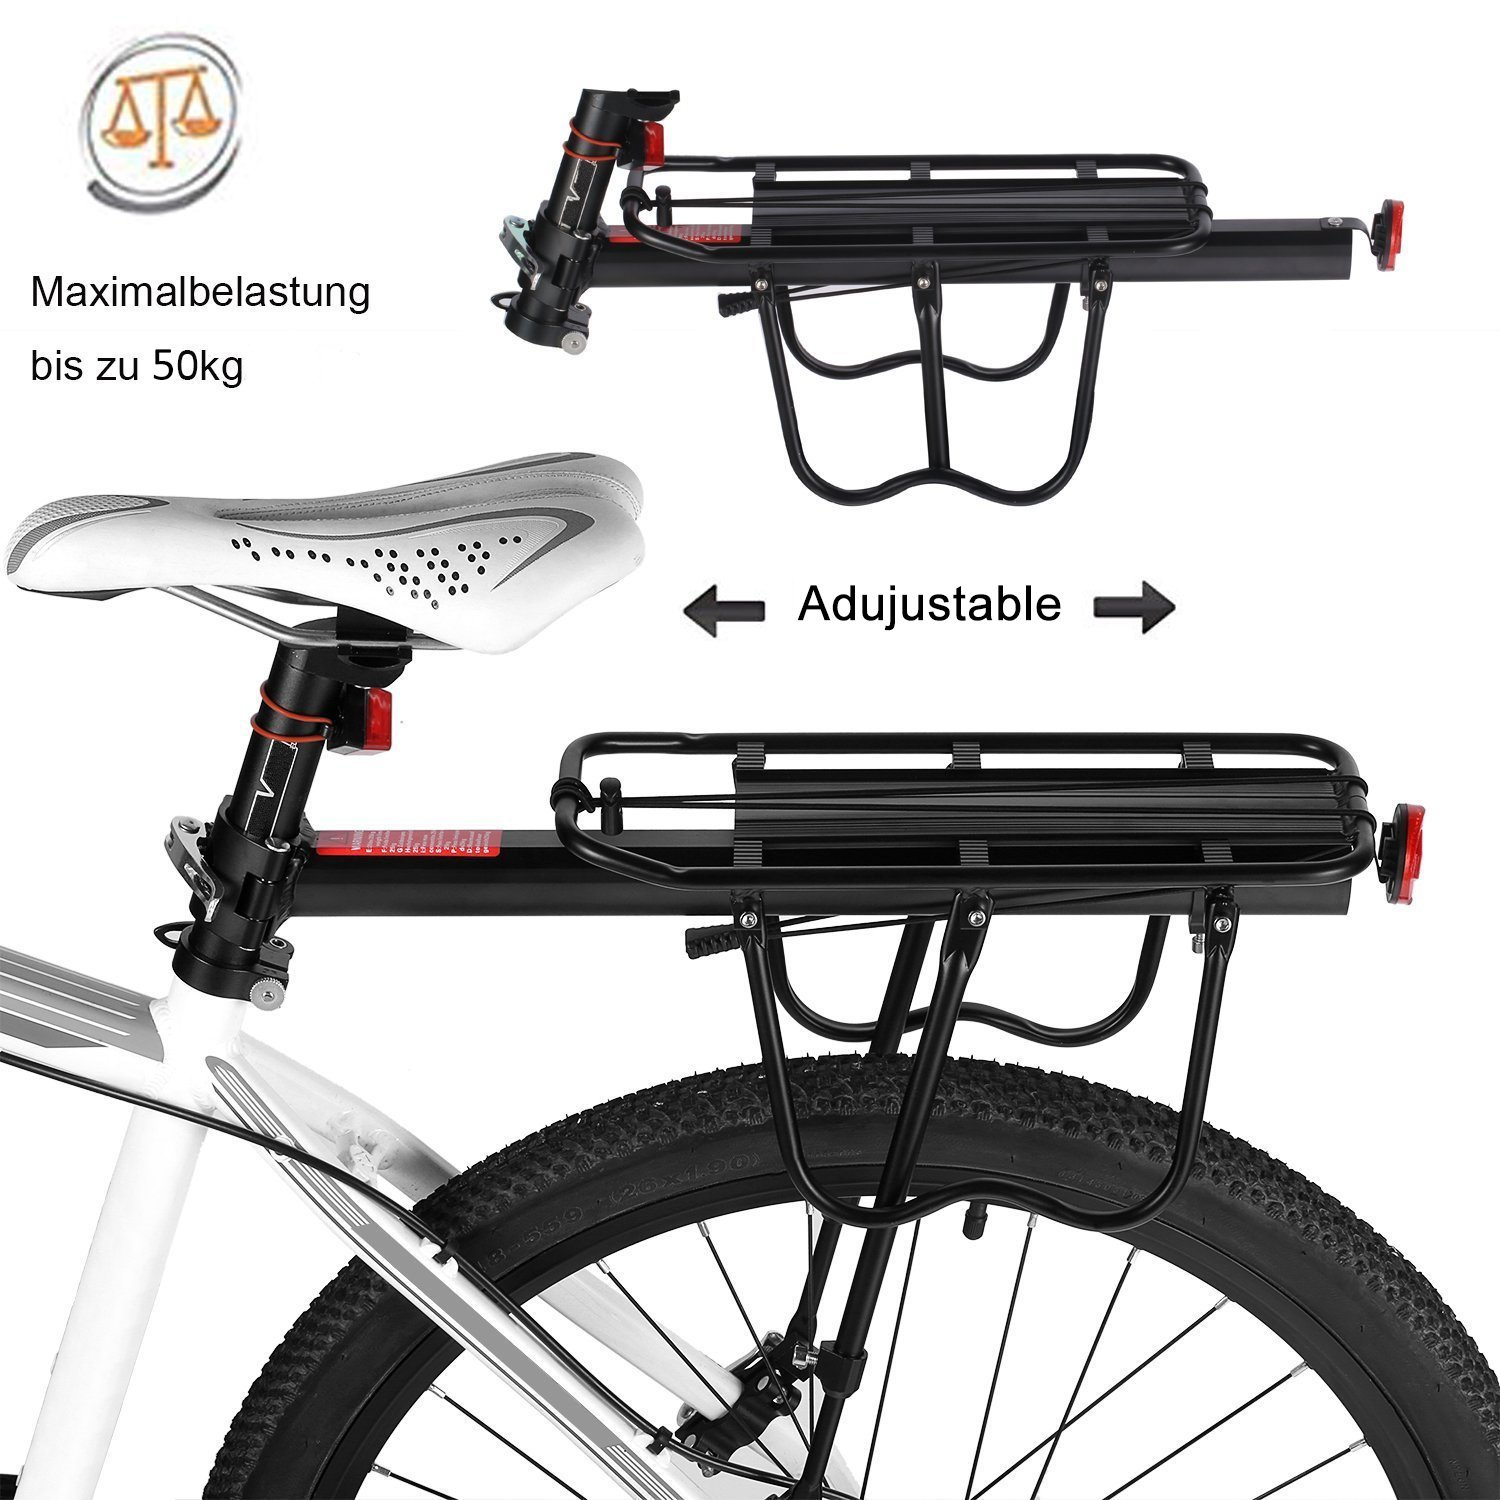 Bike Cargo Racks Bicycle Pannier Rack Mountain Carrier Rear Rack Seat Load 50Kg Luggage Bags for Cycling Camping Sport by Calar (Image #4)